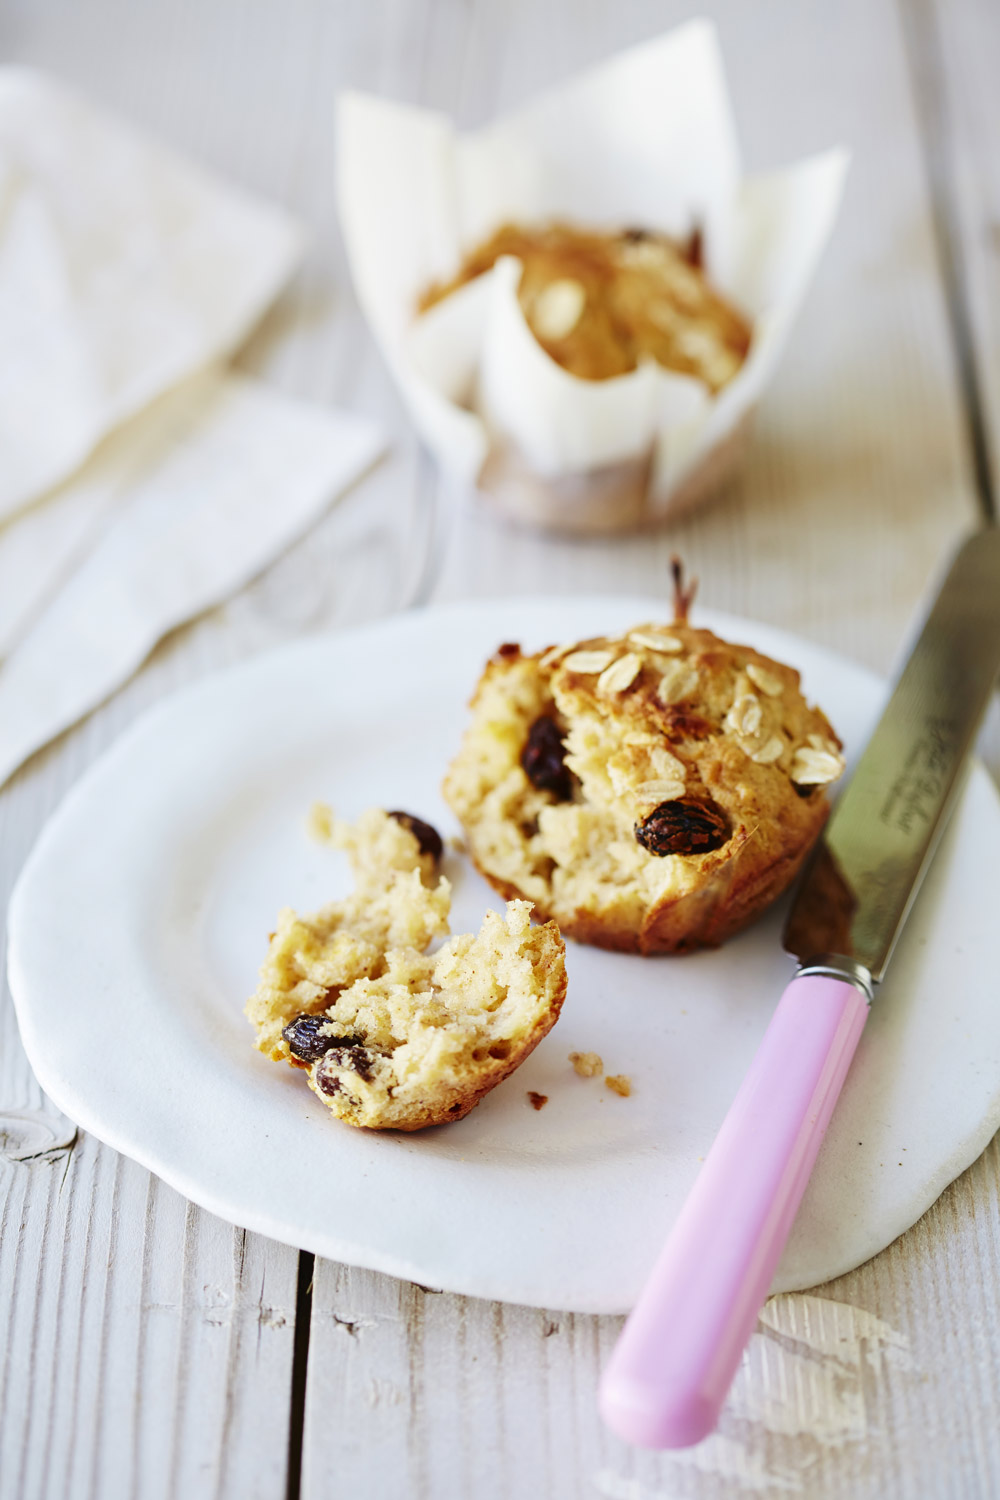 Apple, sultana and oat muffins - auzure Canola Oil